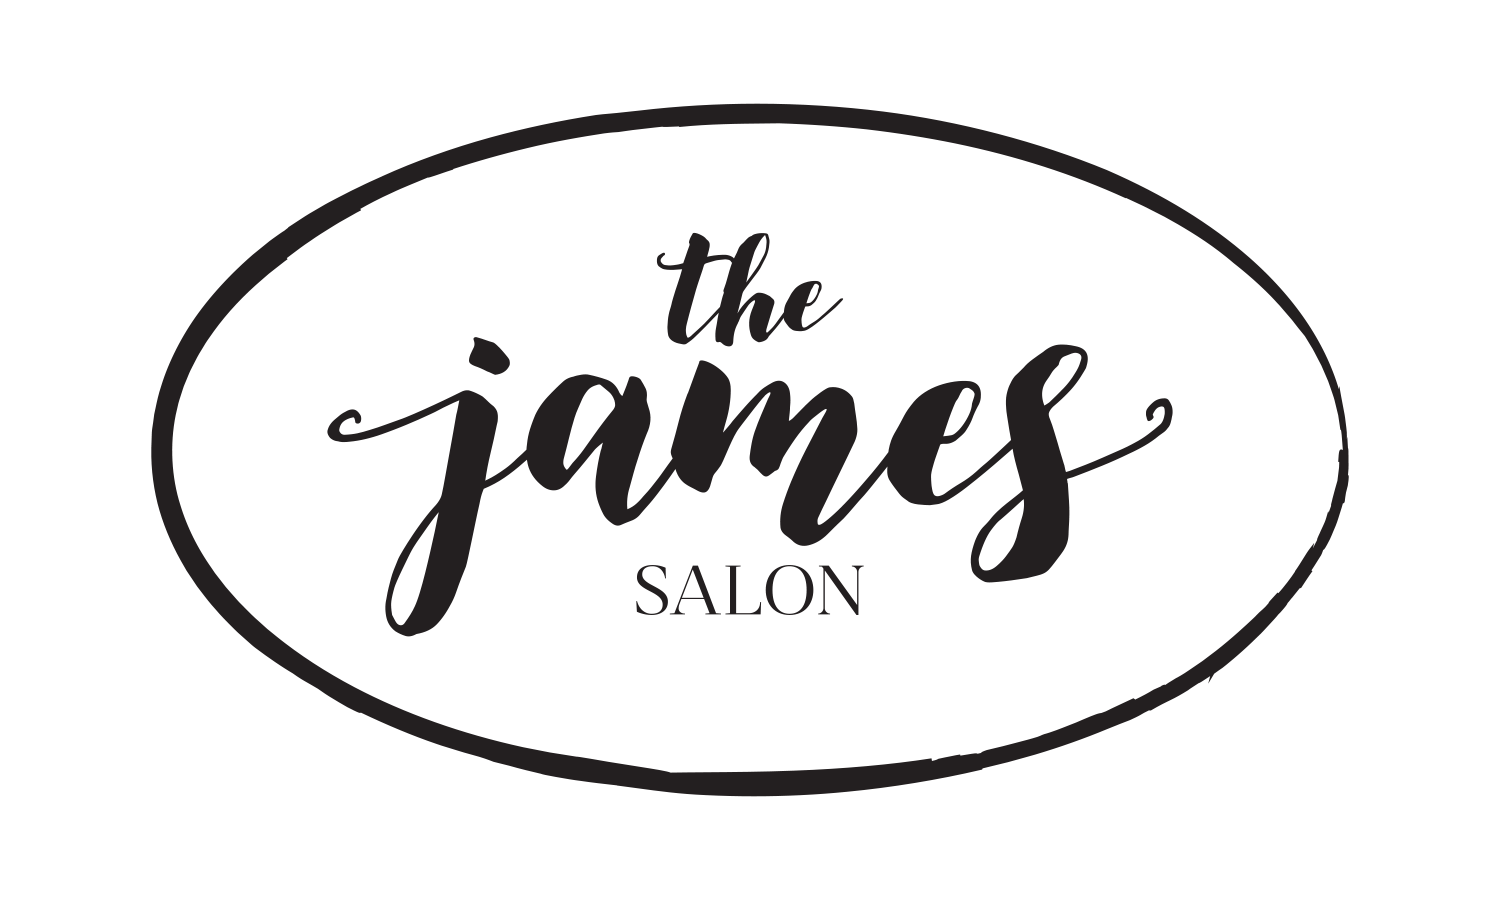 The James Salon